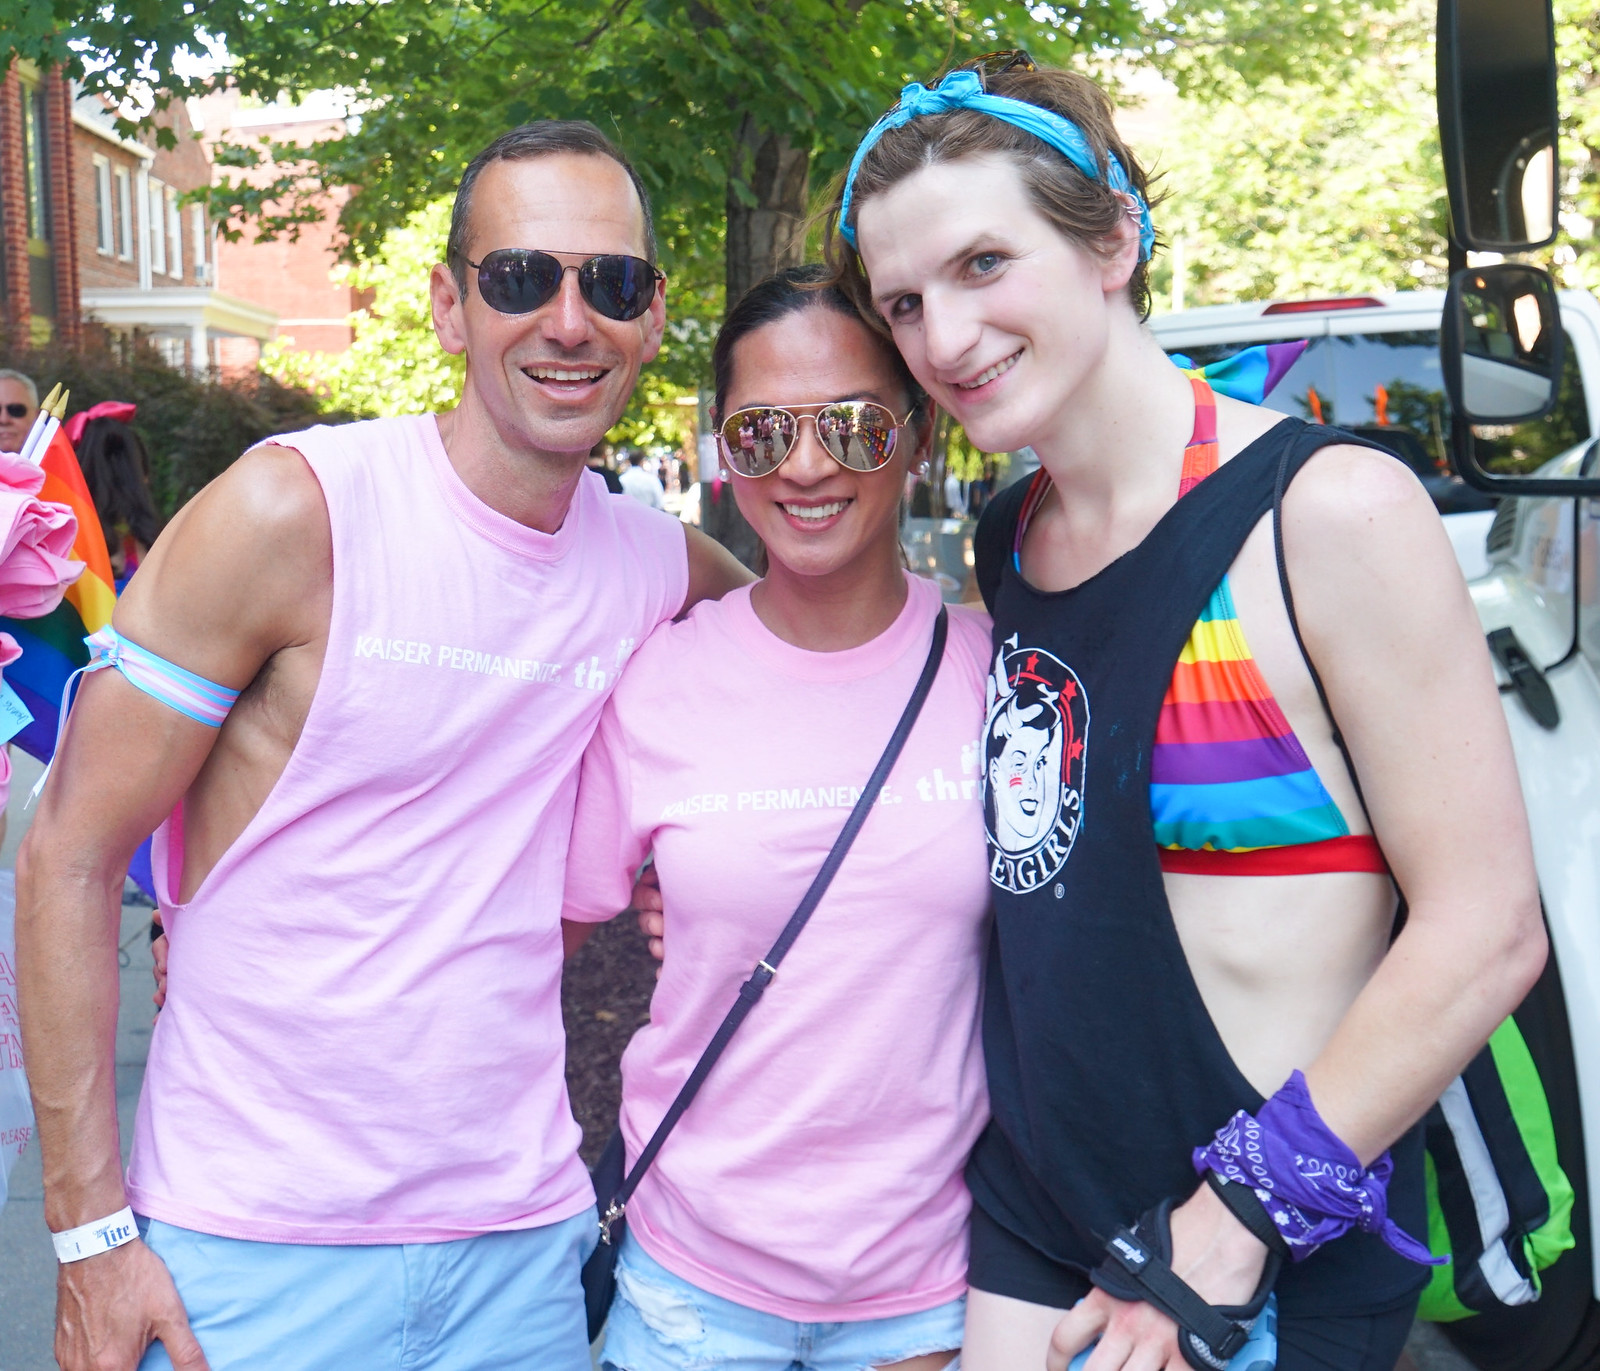 2017.06.10 DC Capital Pride Parade, Washington, DC USA 04857